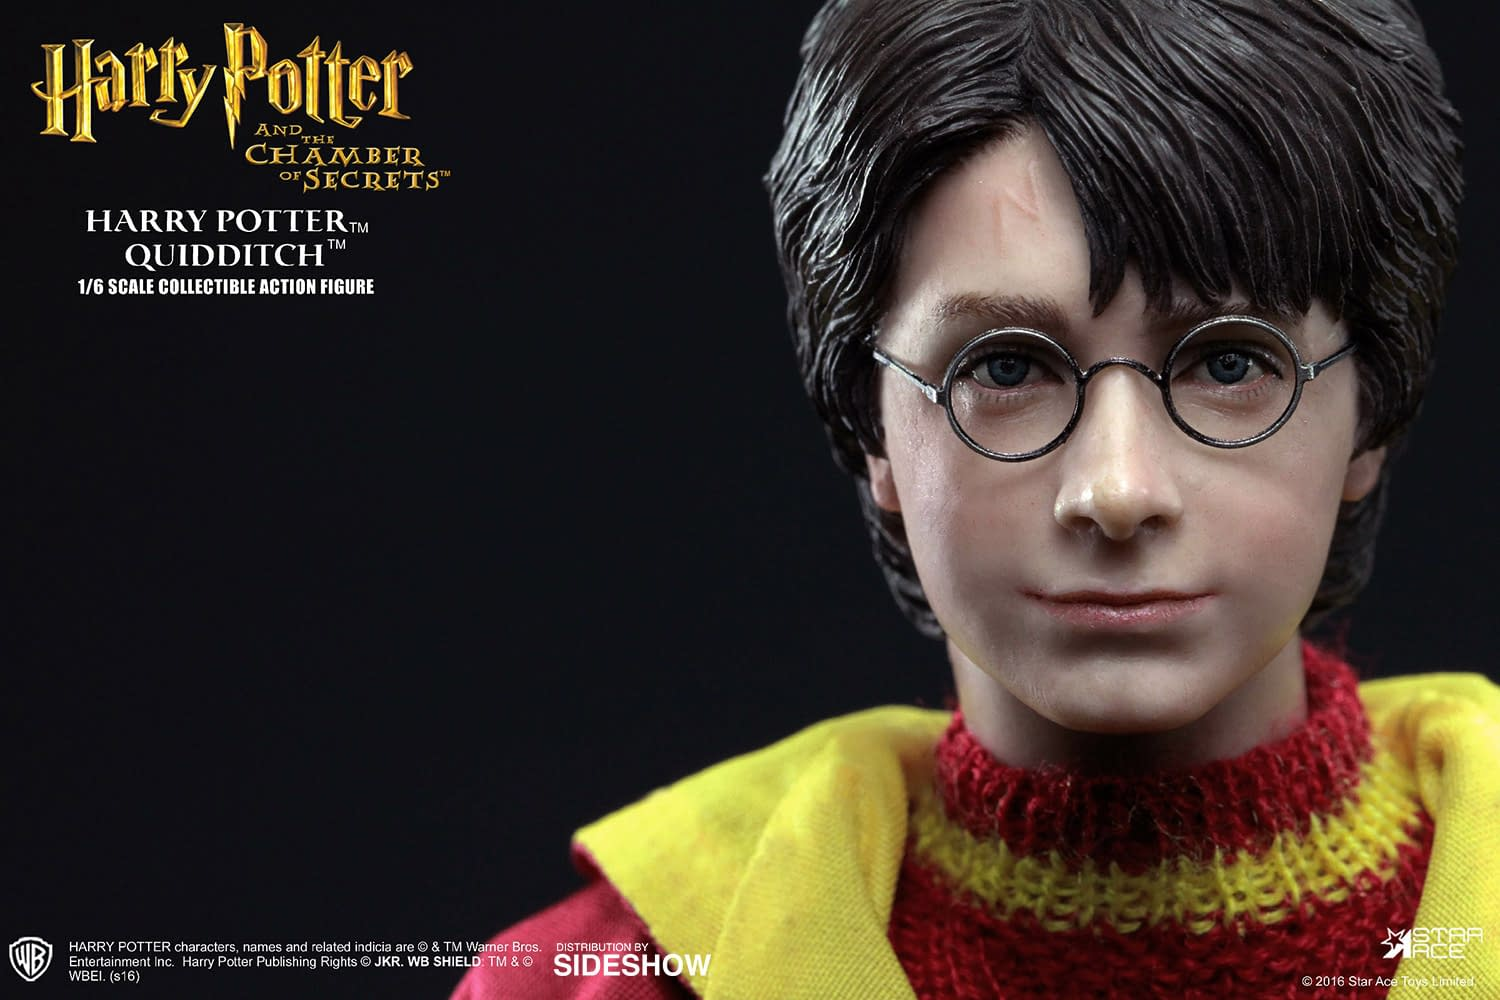 harry-potter-draco-malfoy-20-quidditch-twin-pack_harry-potter_gallery_5e83b21a2fc5a